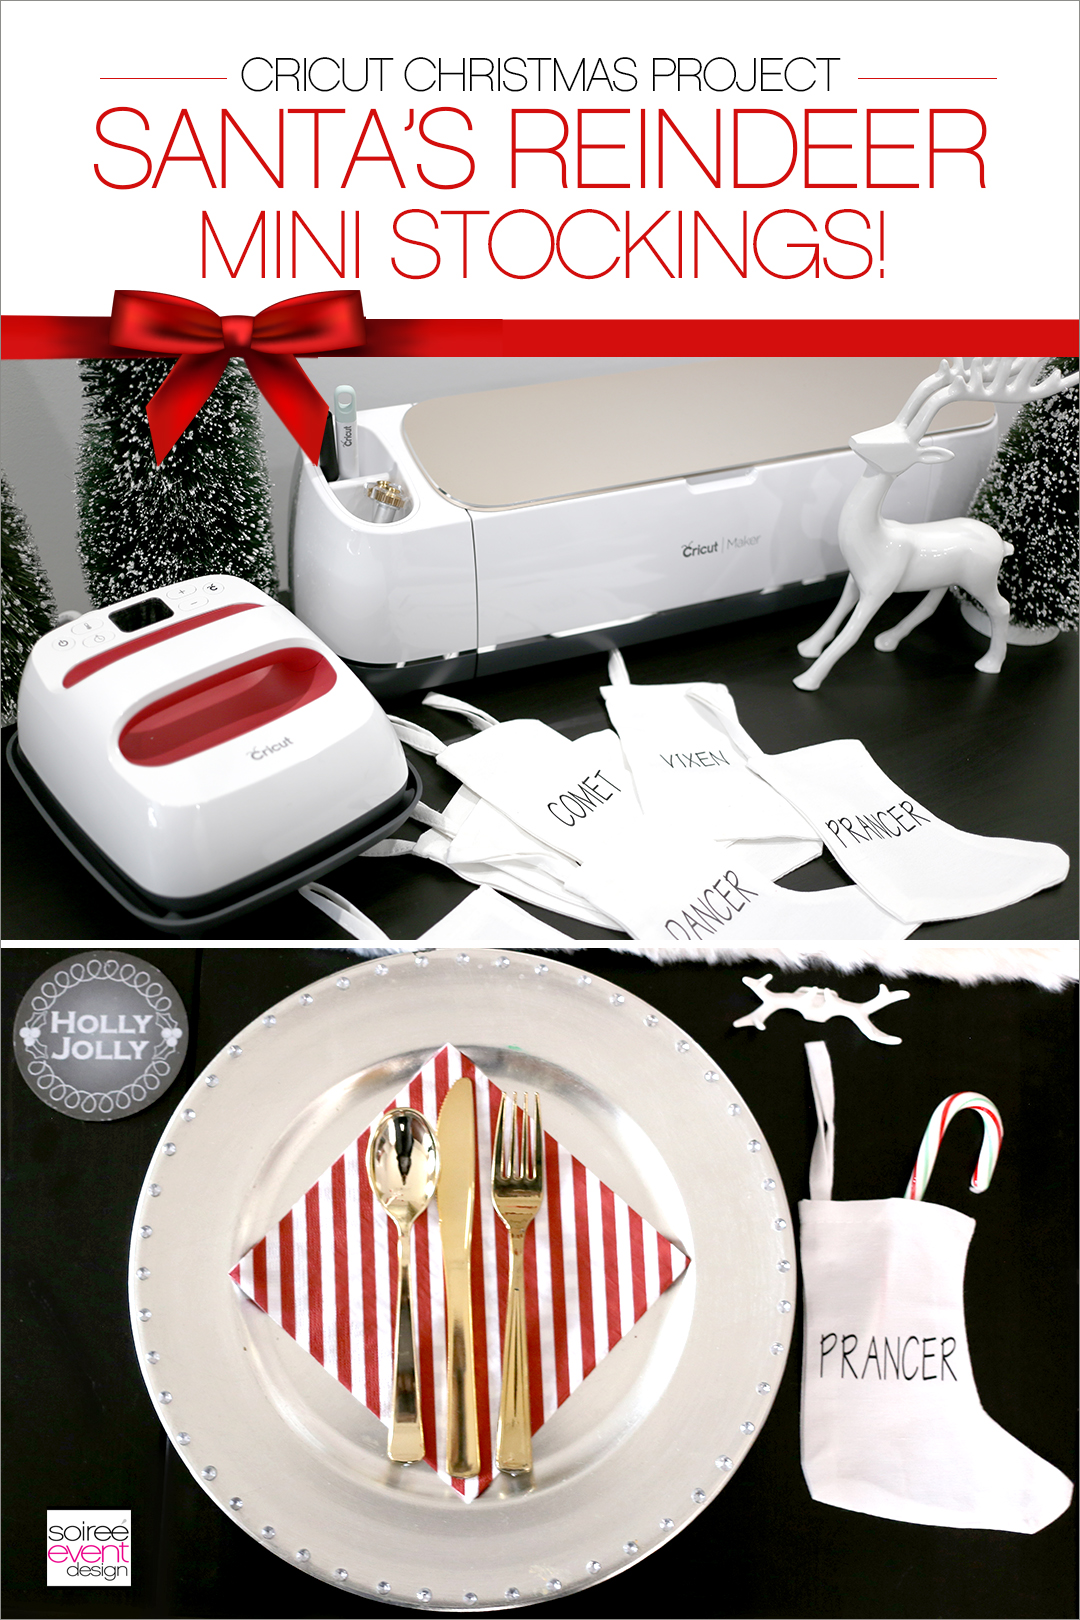 Santa Reindeer Mini Stockings with Cricut - PINTEREST